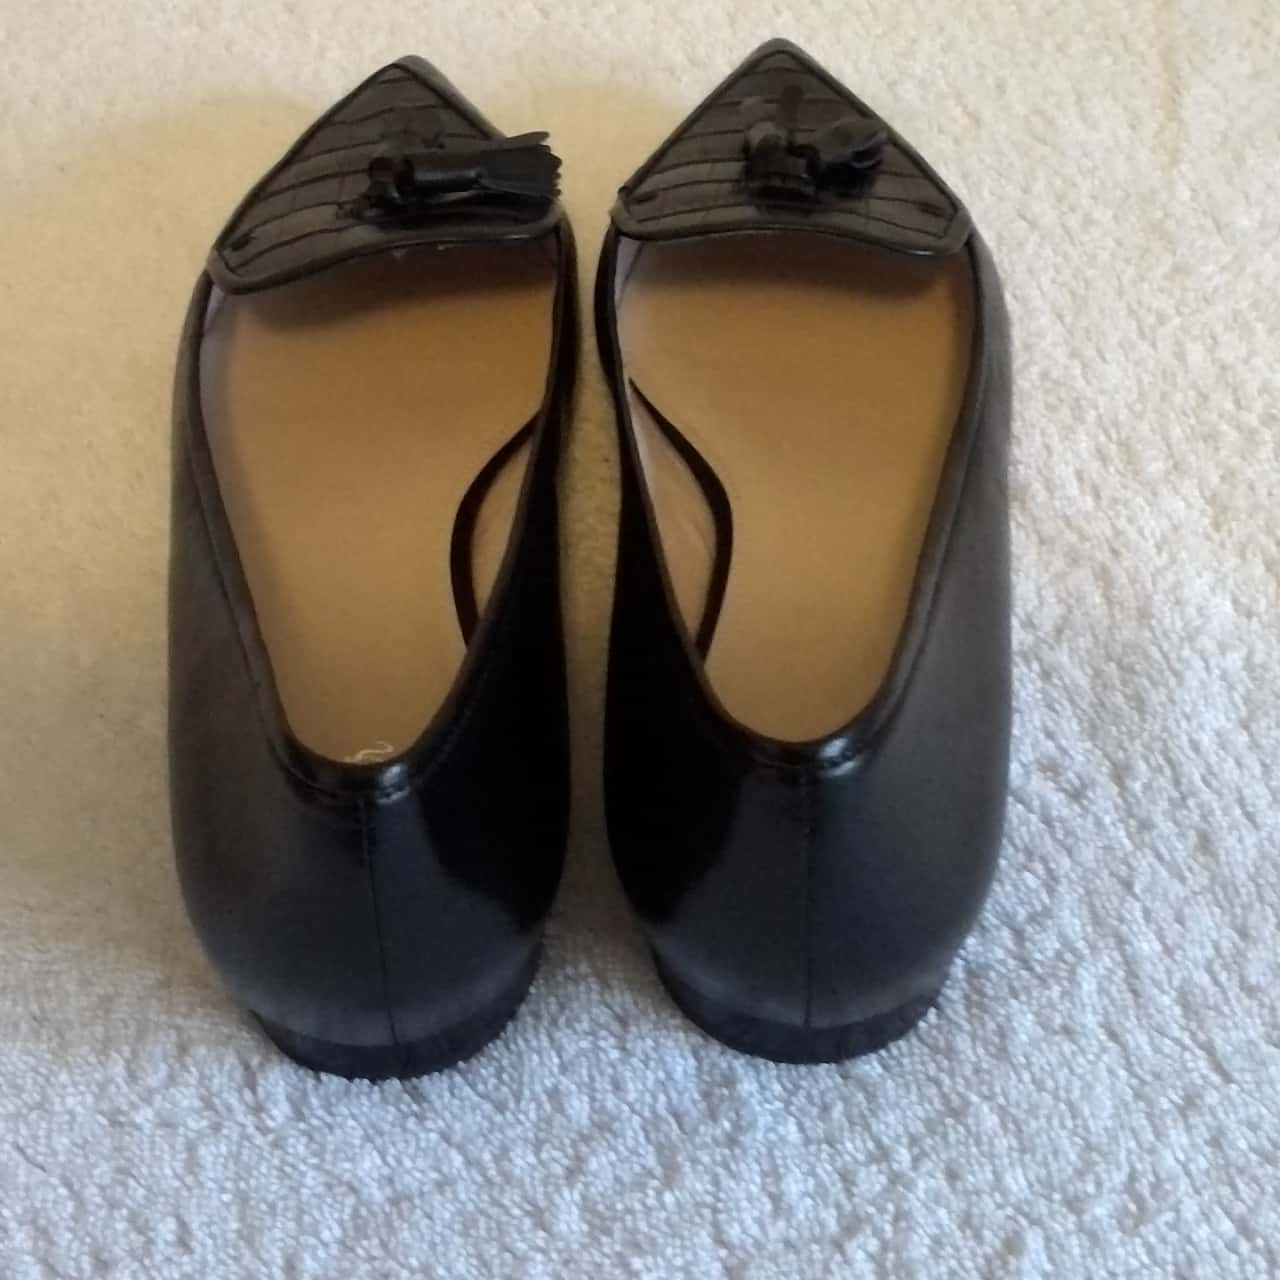 BNWT Womens WITTNER STYLISH BLACK LEATHER FLAT COURT SHOE   Size 9.5 'SONARI' RRP $149.95